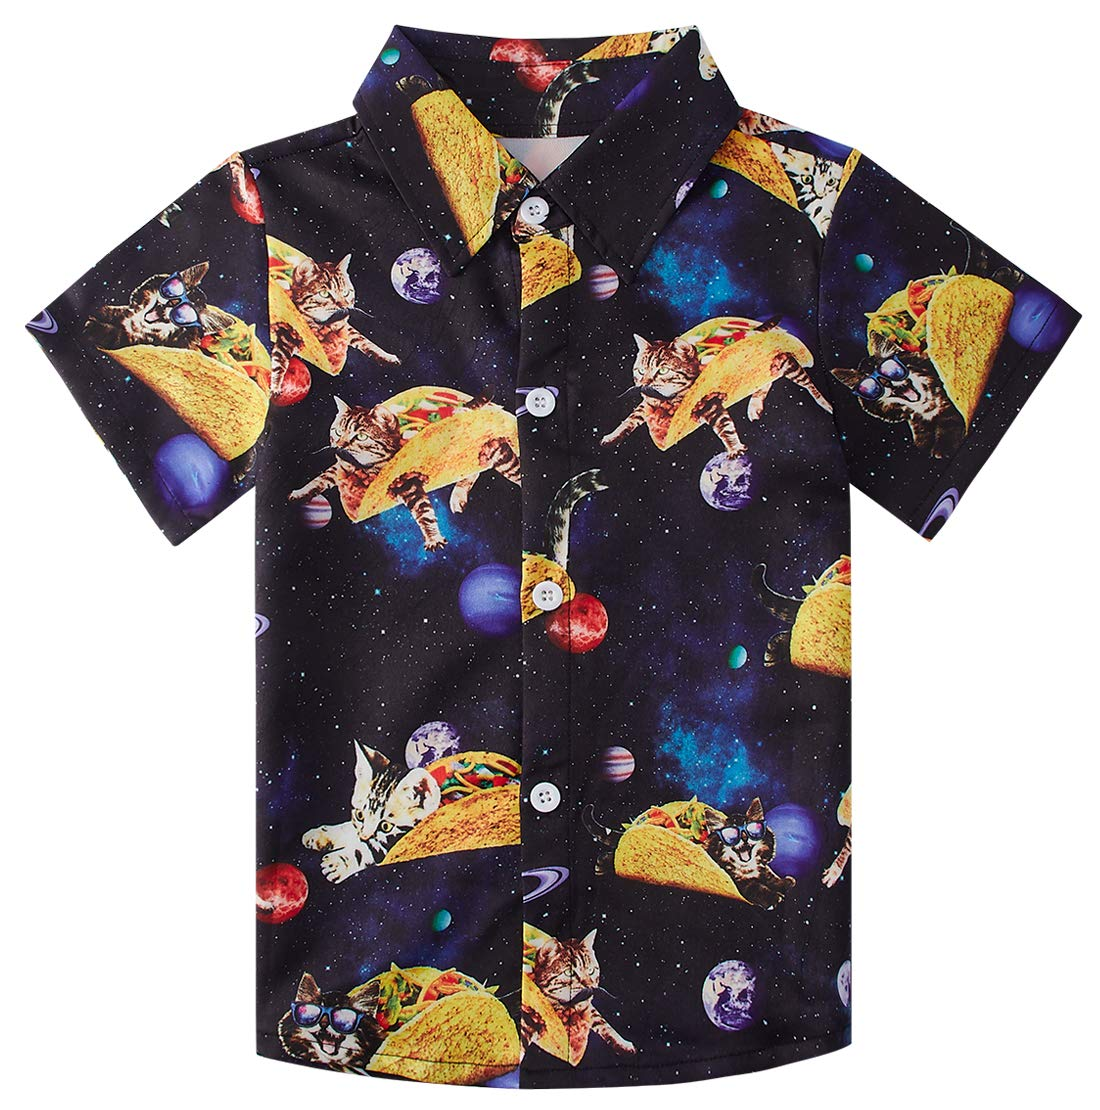 uideazone Toddler Boys Cats in Galaxy and Sandwich Cartoon Print Shirts Children's Short Sleeve Polo Shirt Hawaiian Party Wear Clothing (Size 7-8T)